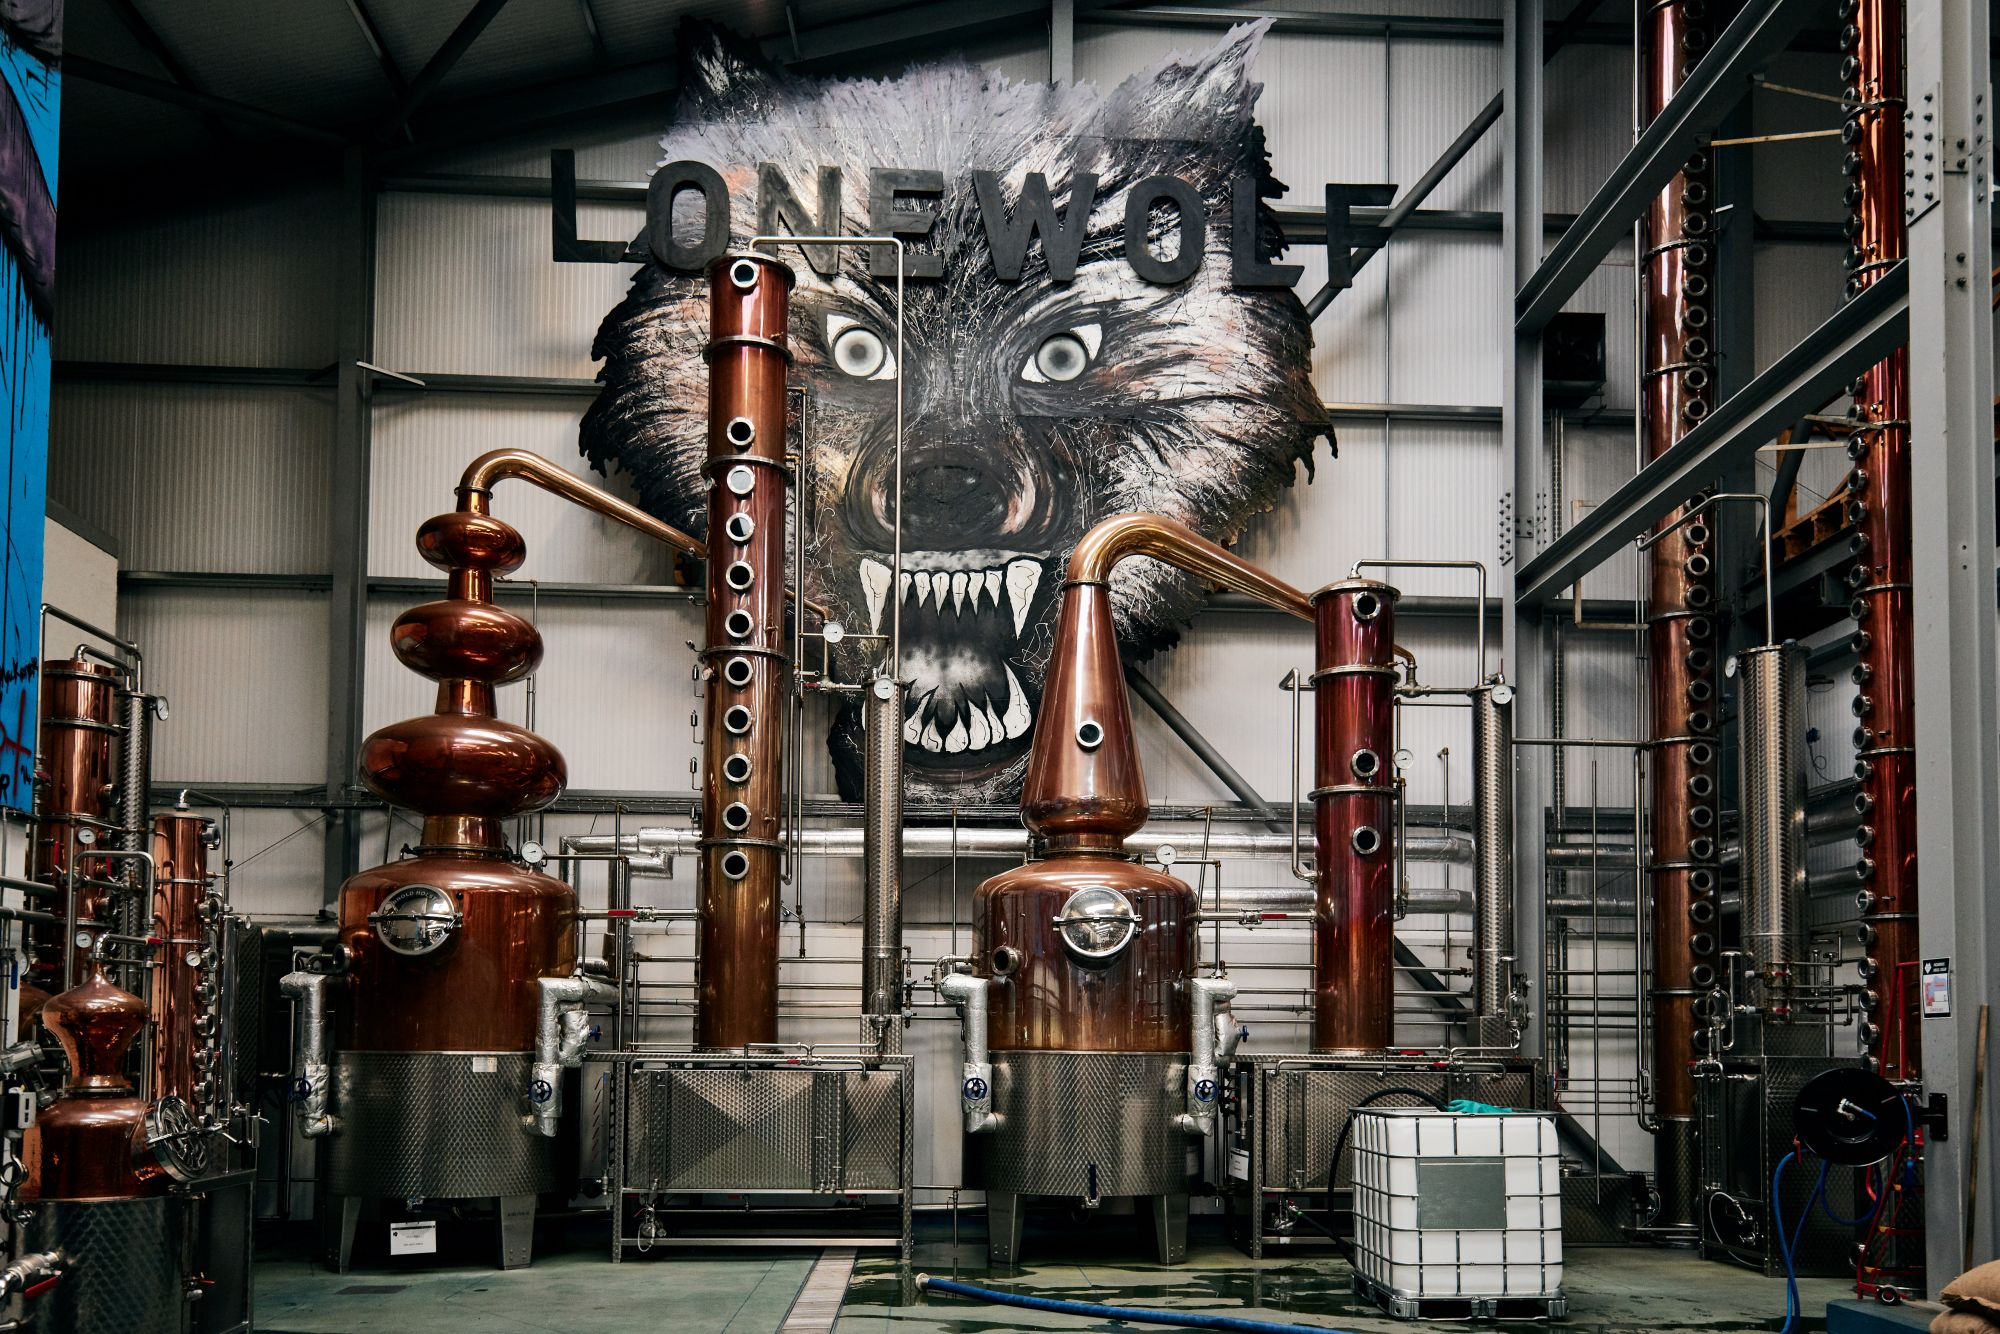 BrewDog Distilling Co